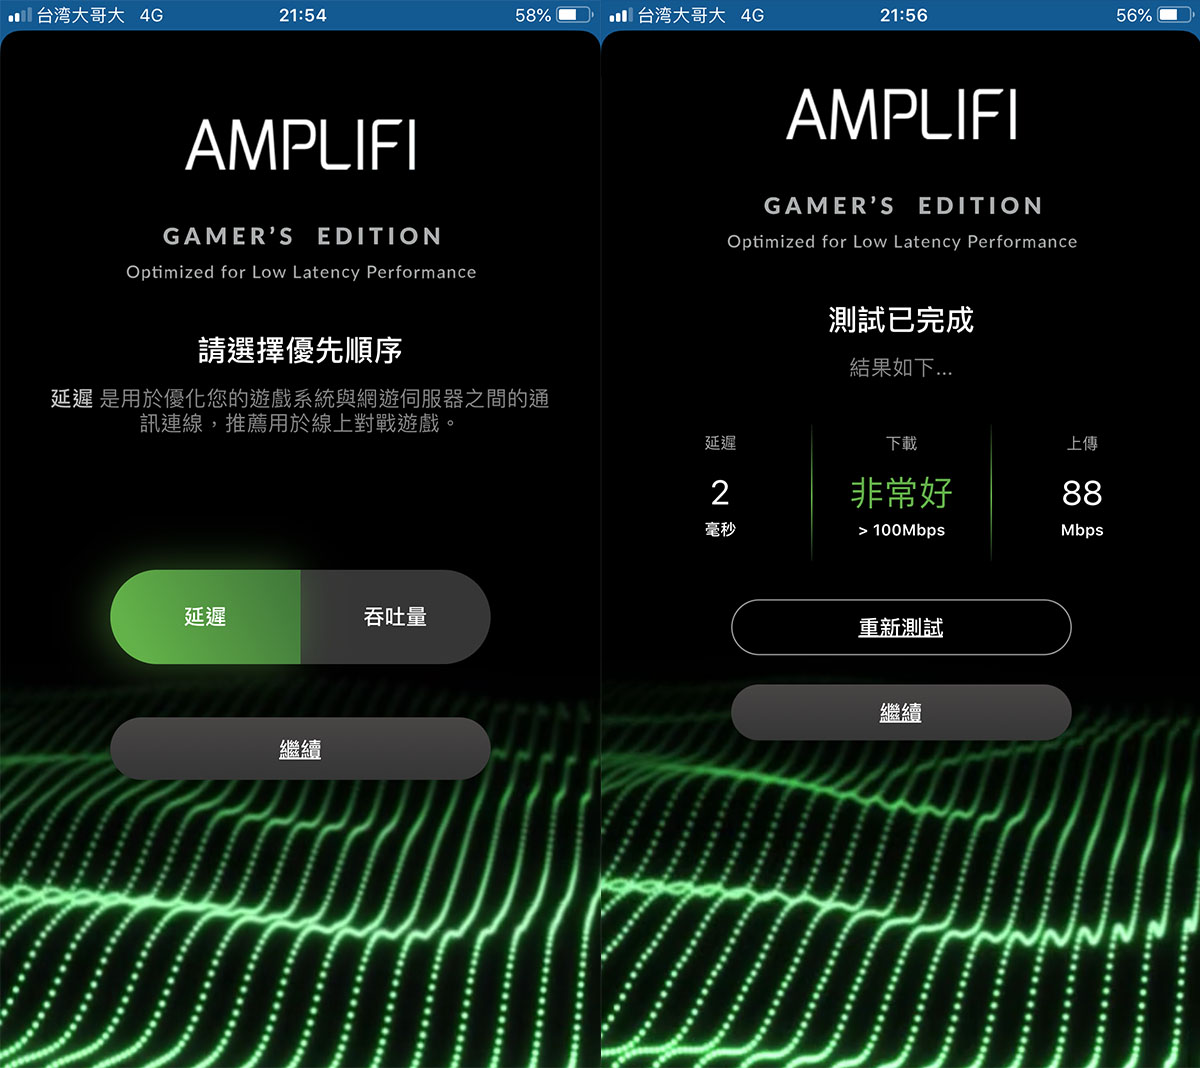 Ubiquiti AmpliFi Gamer's Edition 評測:Mesh WiFi 低延遲網路優化 29